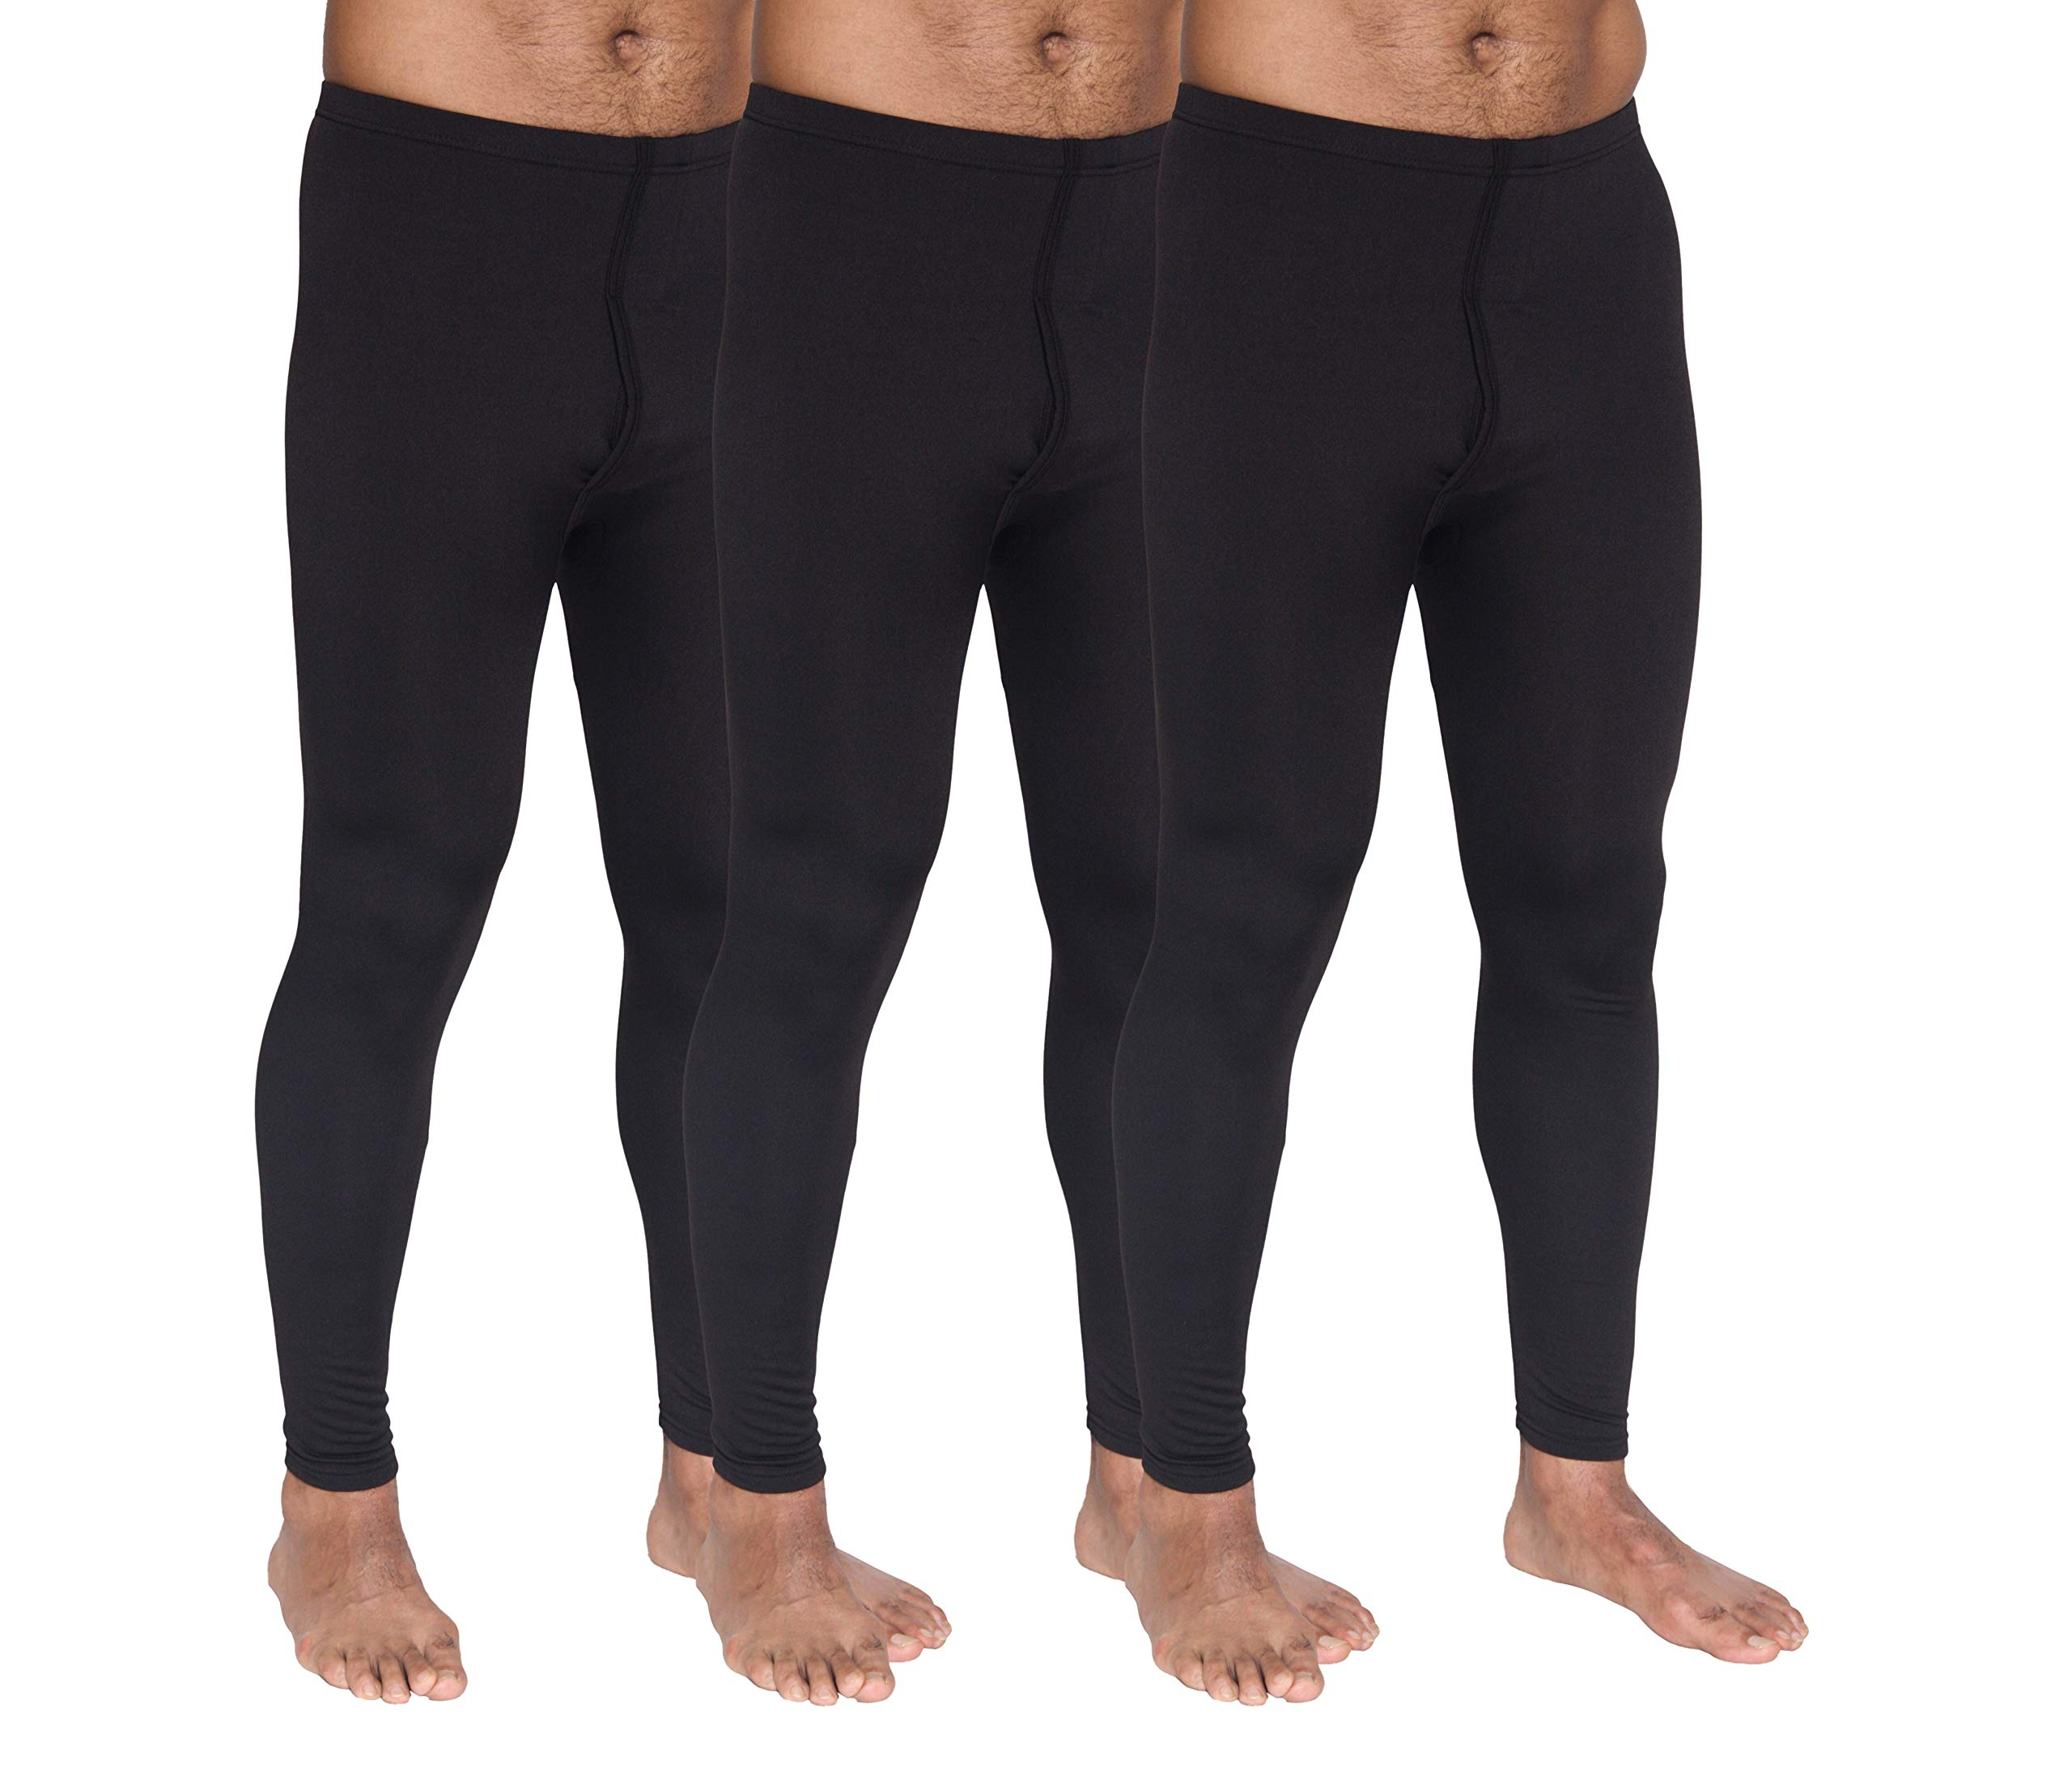 Real Essentials 3 Pack: Men's Thermal Underwear Base Layer Fleece Lined Compression Pants with Functional Fly